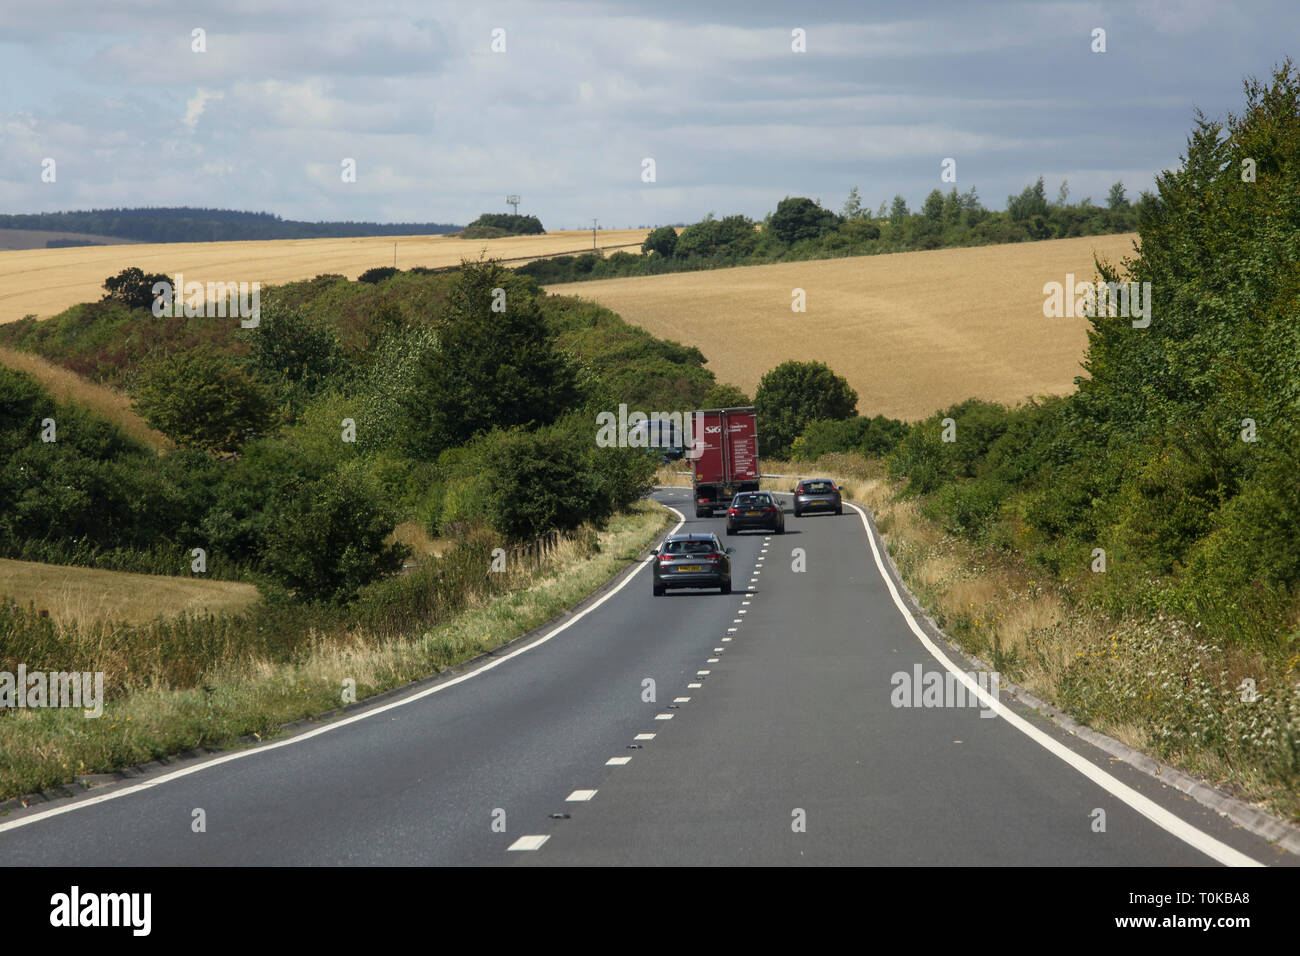 Wiltshire England Cars on the A303 Trunk Road - Stock Image